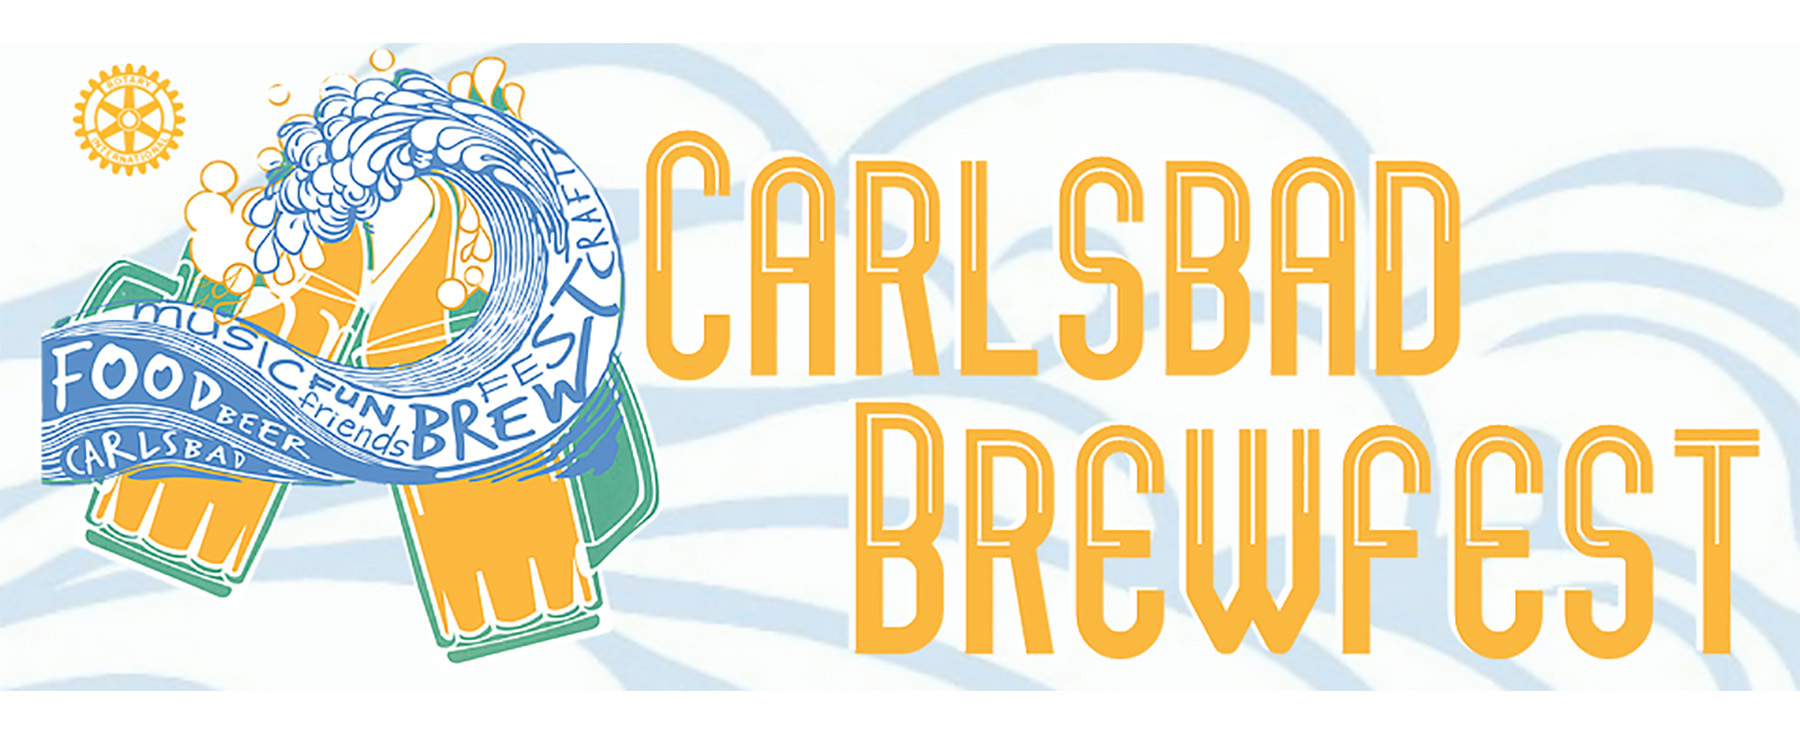 4th Annual Carlsbad Brewfest